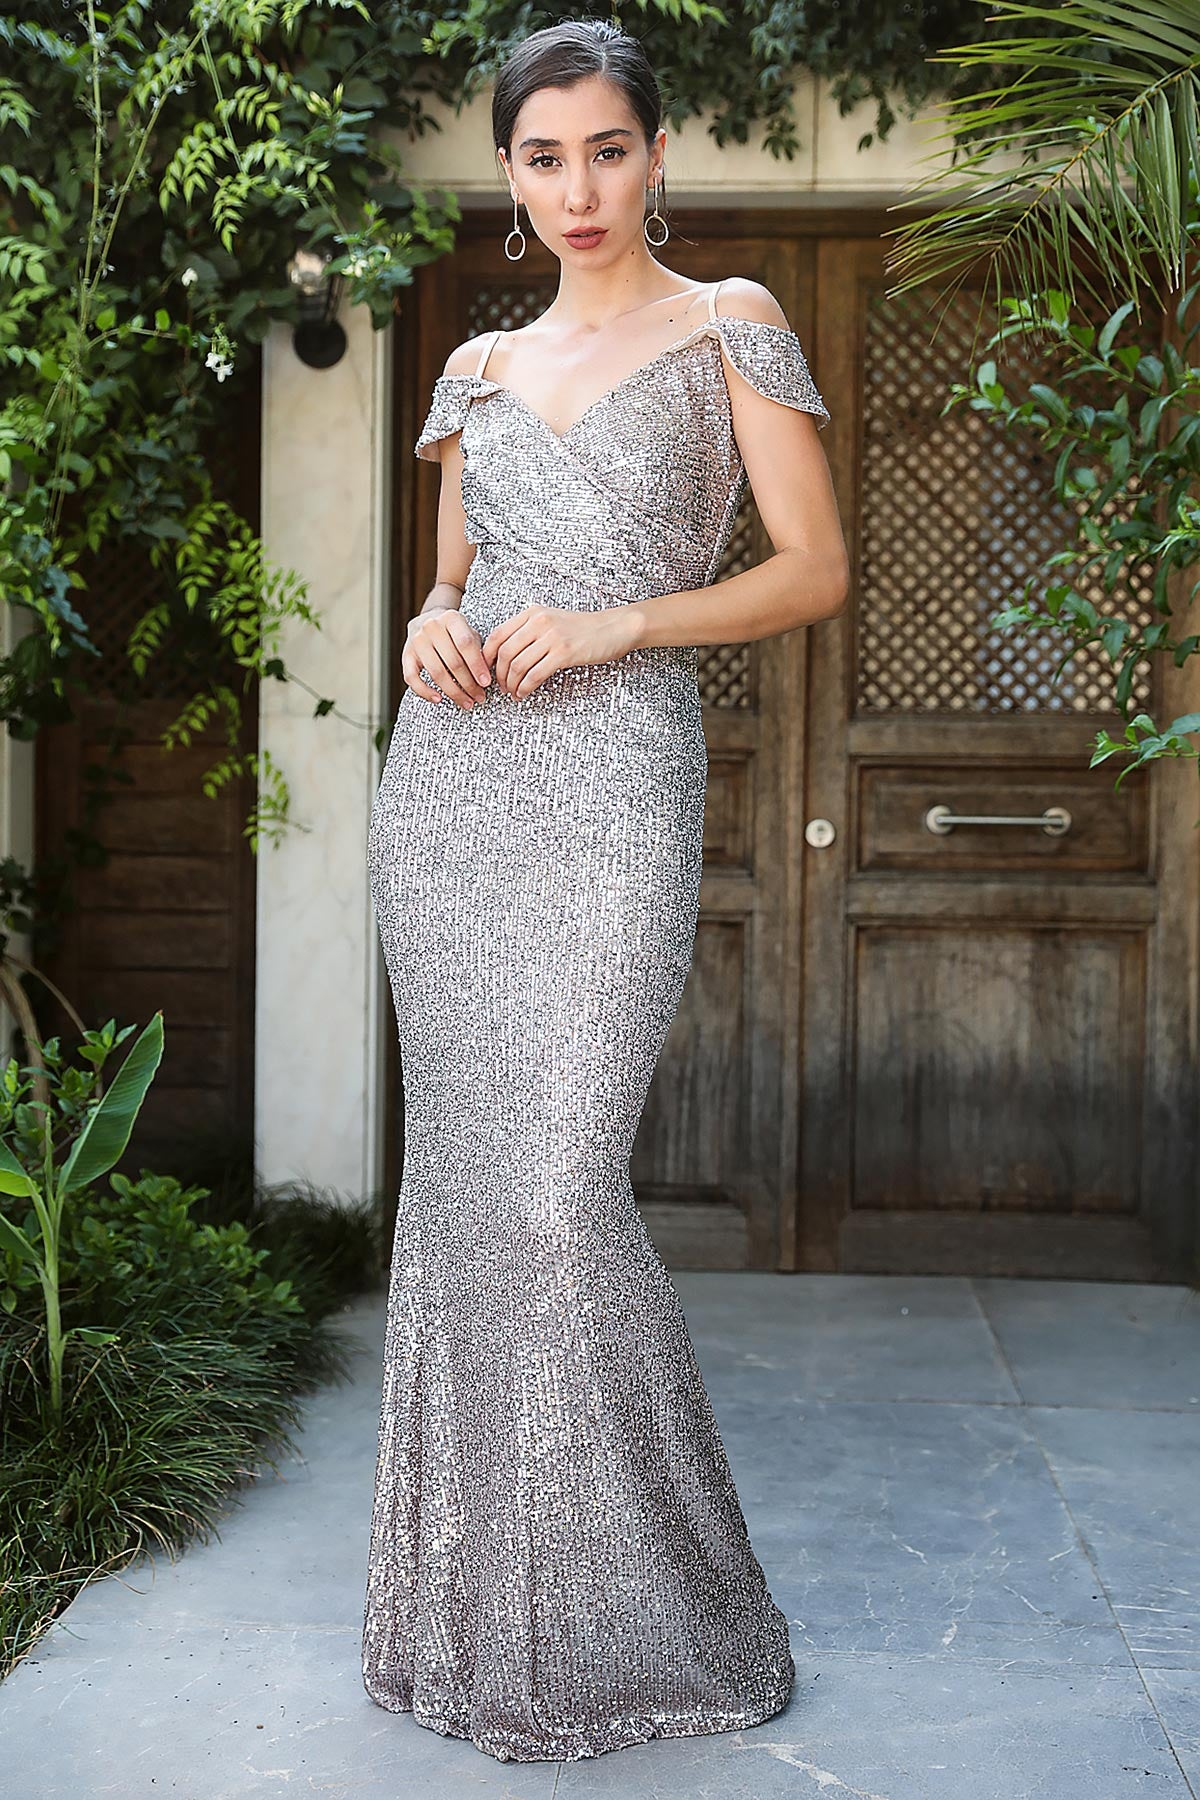 Fish Model Sequin Mink Evening Dress